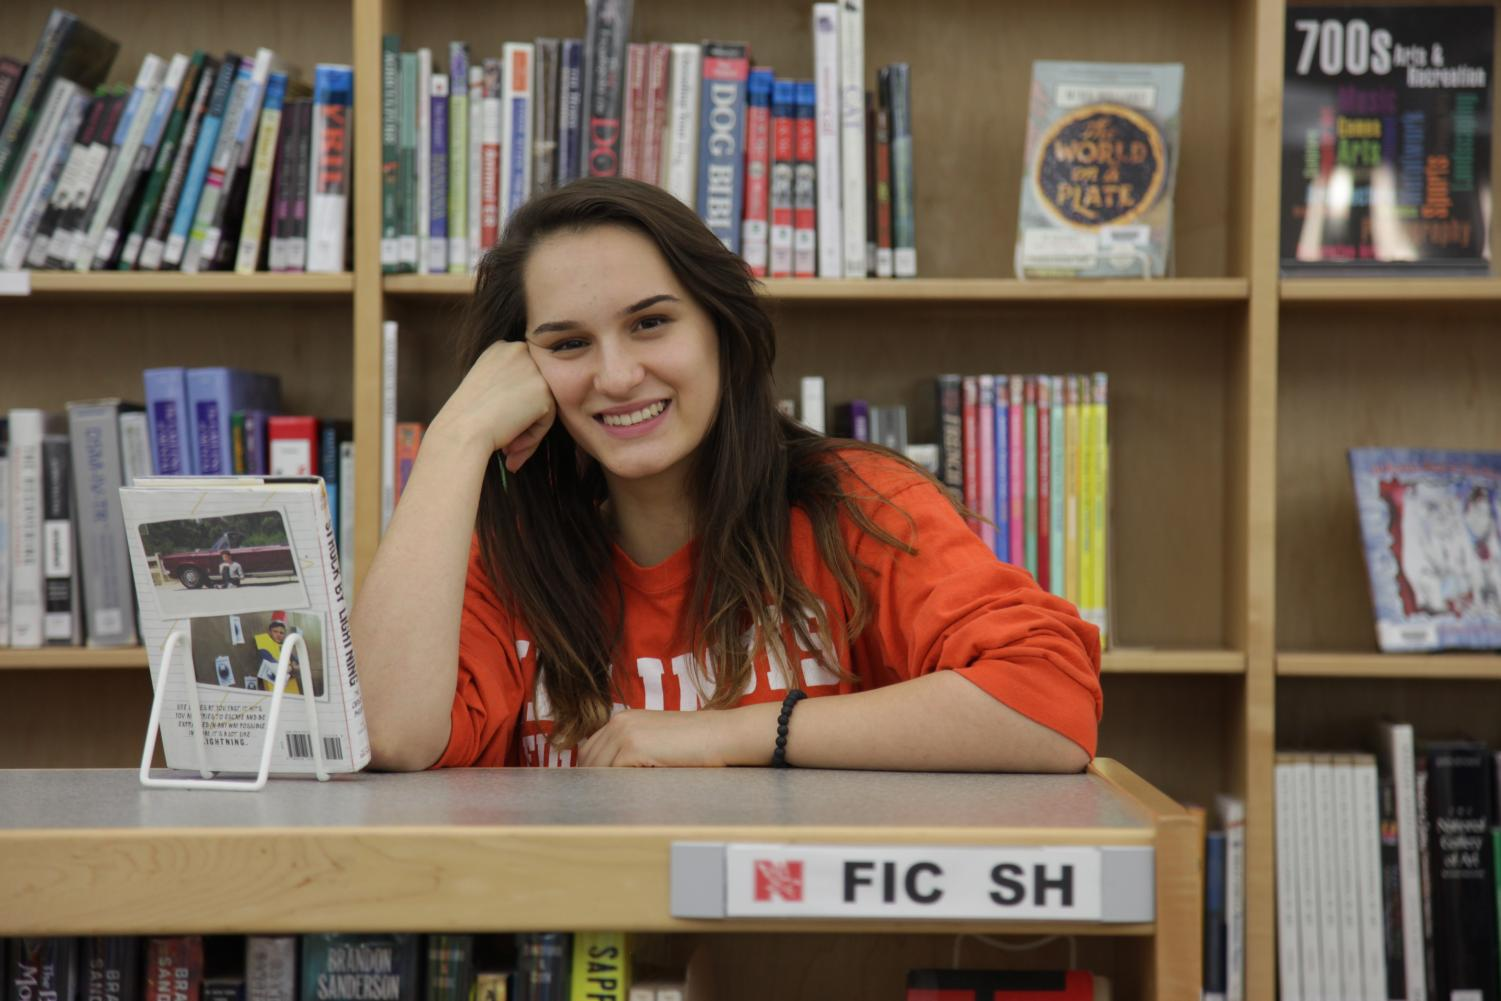 """When it comes to reading, Schramm covers all bases. """"From young adult fiction to dystopian to autobiographies, I don't have a typical genre,"""" Schramm said. """"I like a lot of different books."""""""